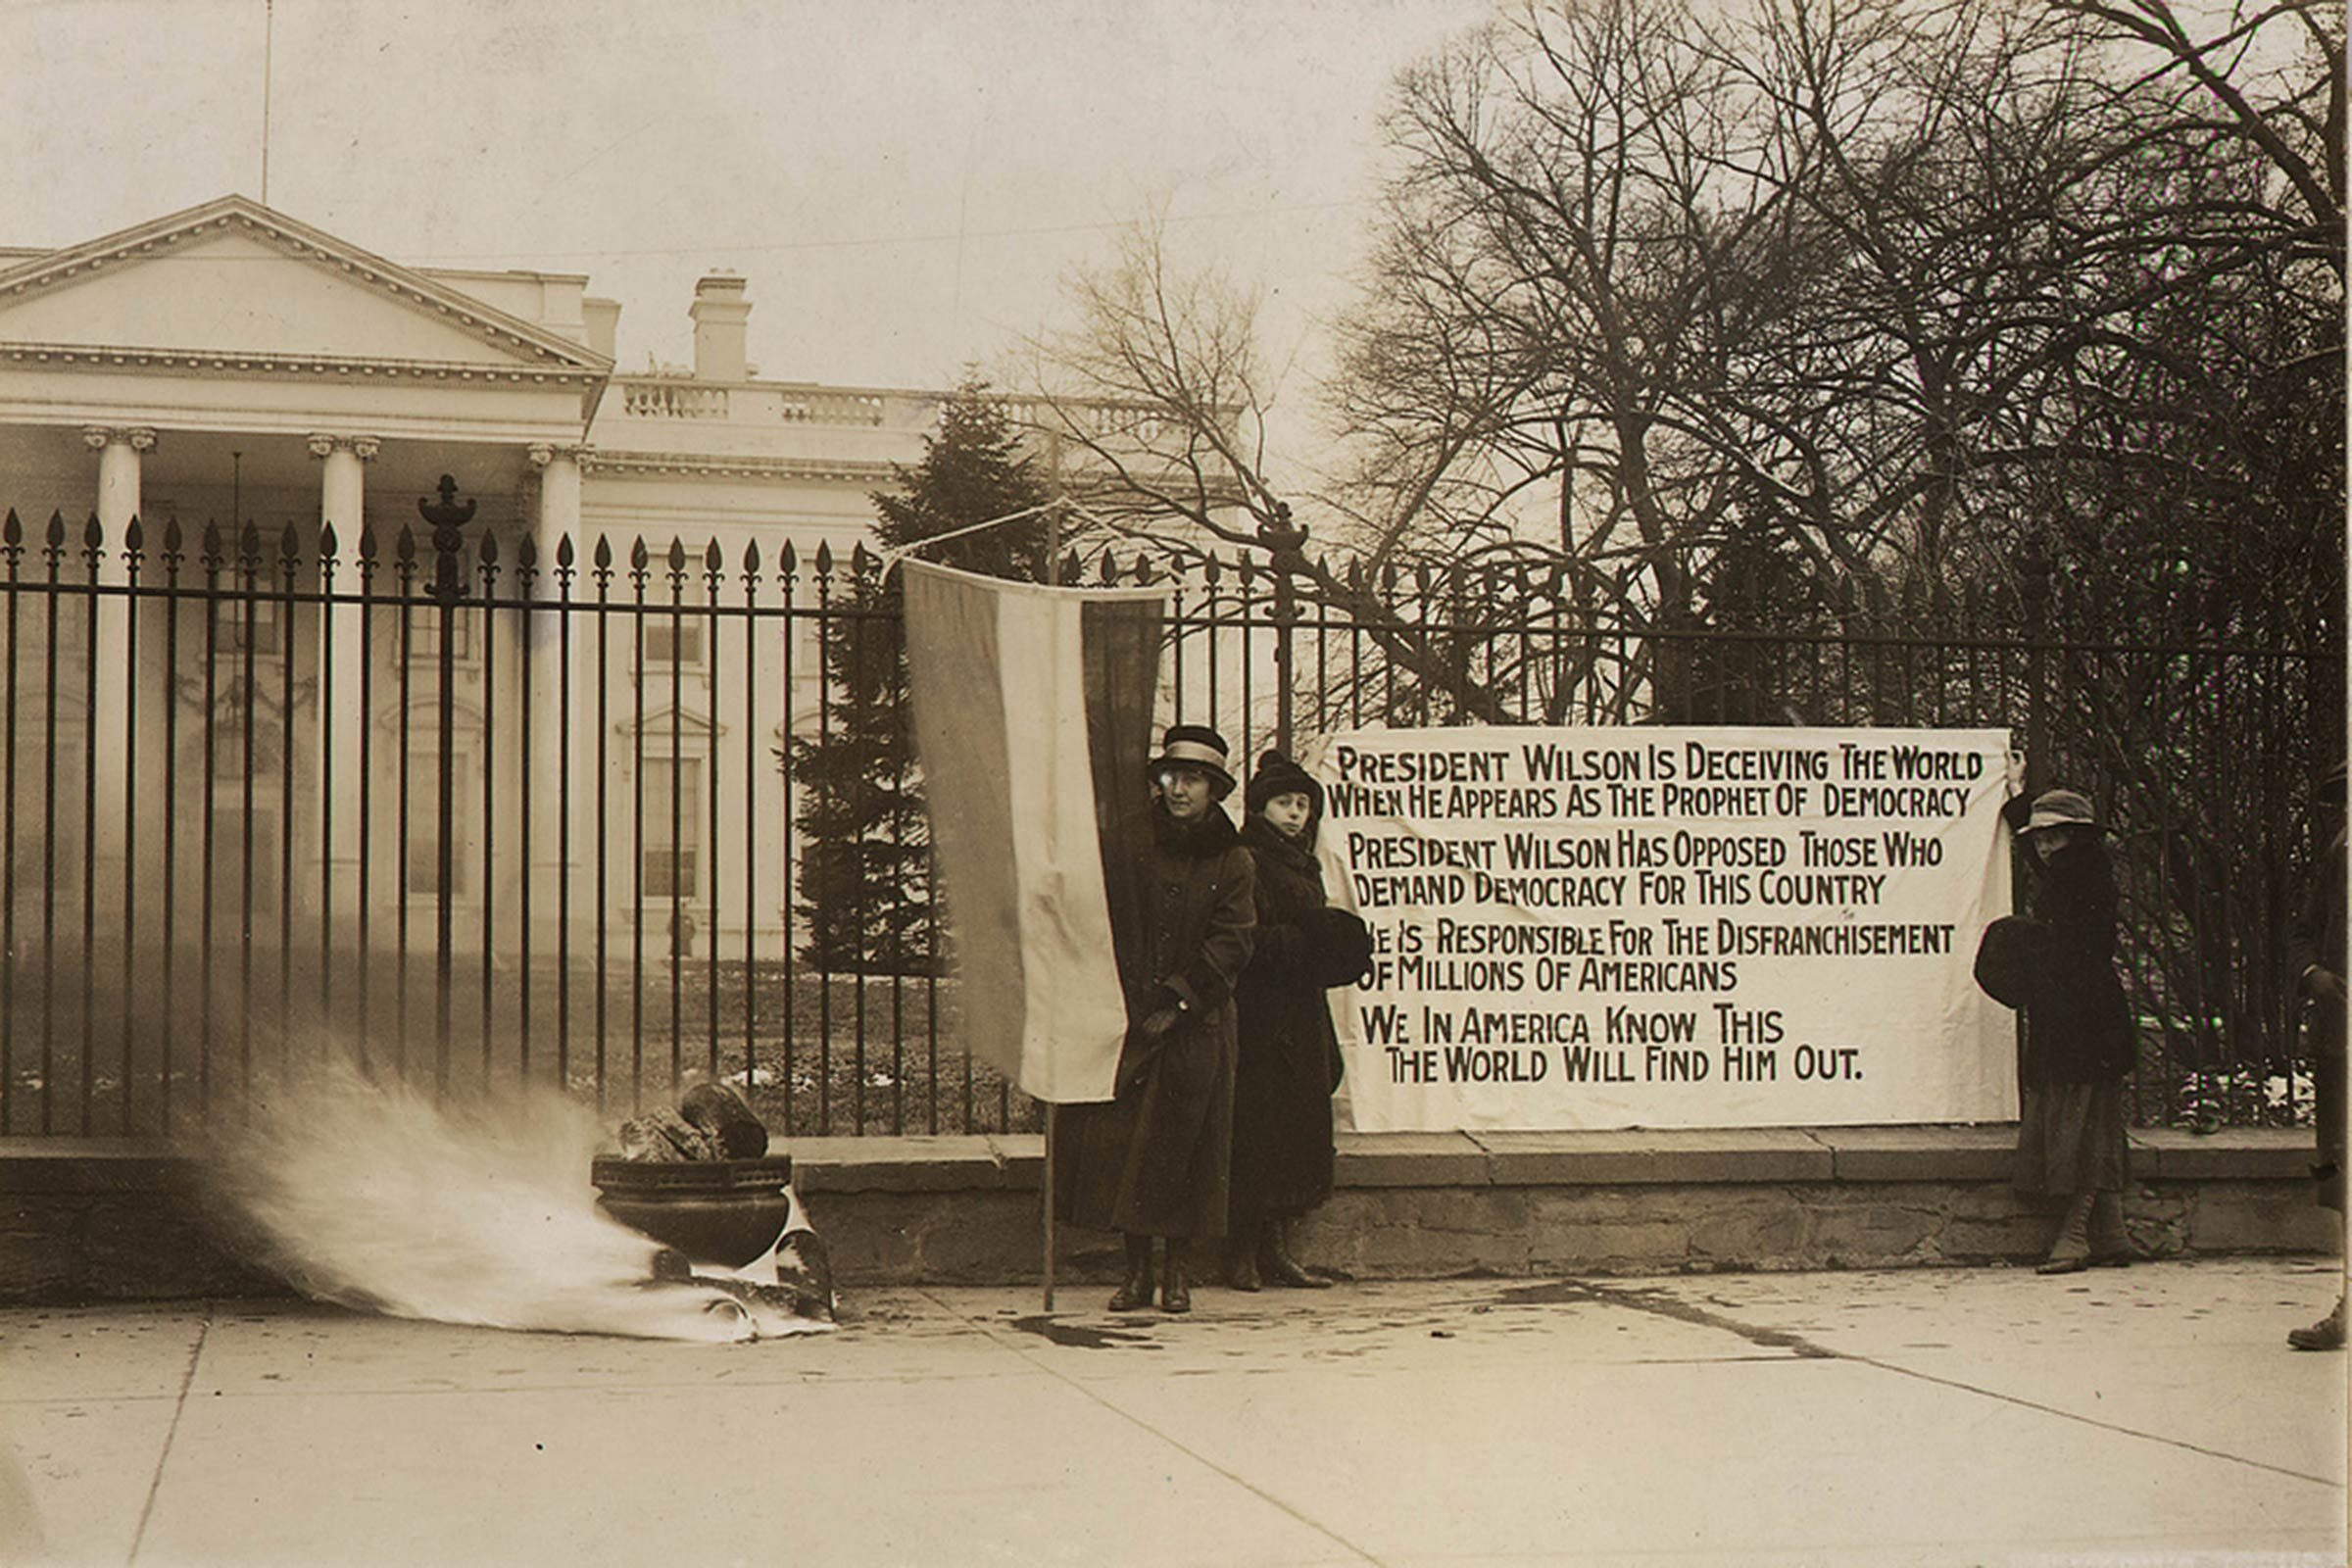 Suffragists protested outside the gates for two straight years